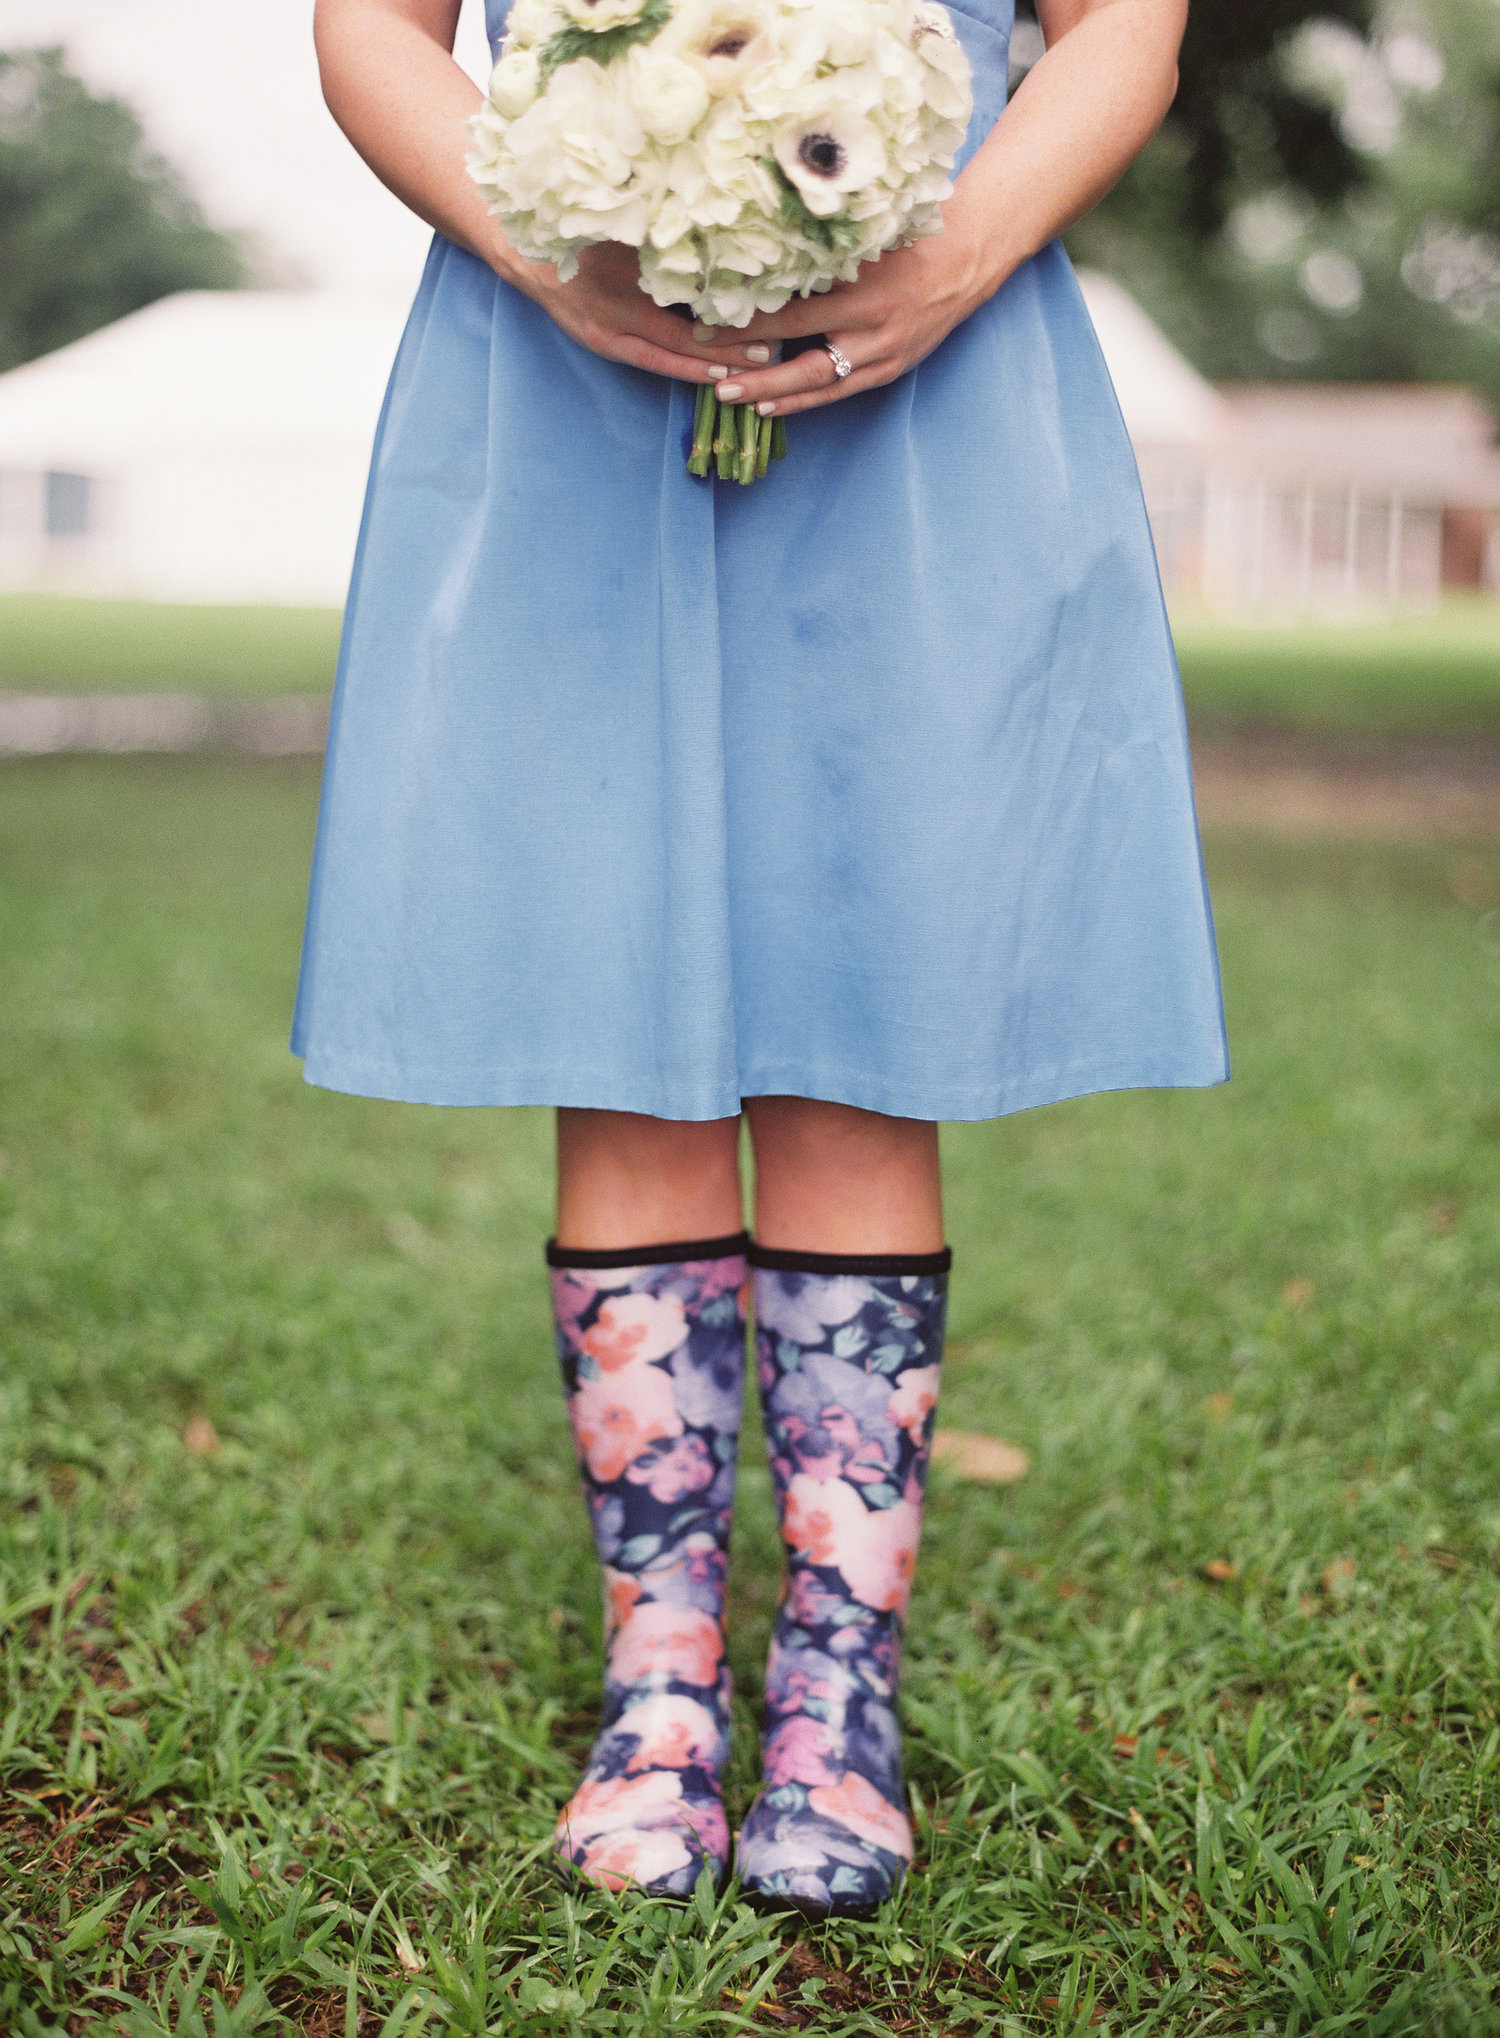 close up photo of a bridesmaid in her light blue short dress, white flowers, and pink and blue floral rain boots